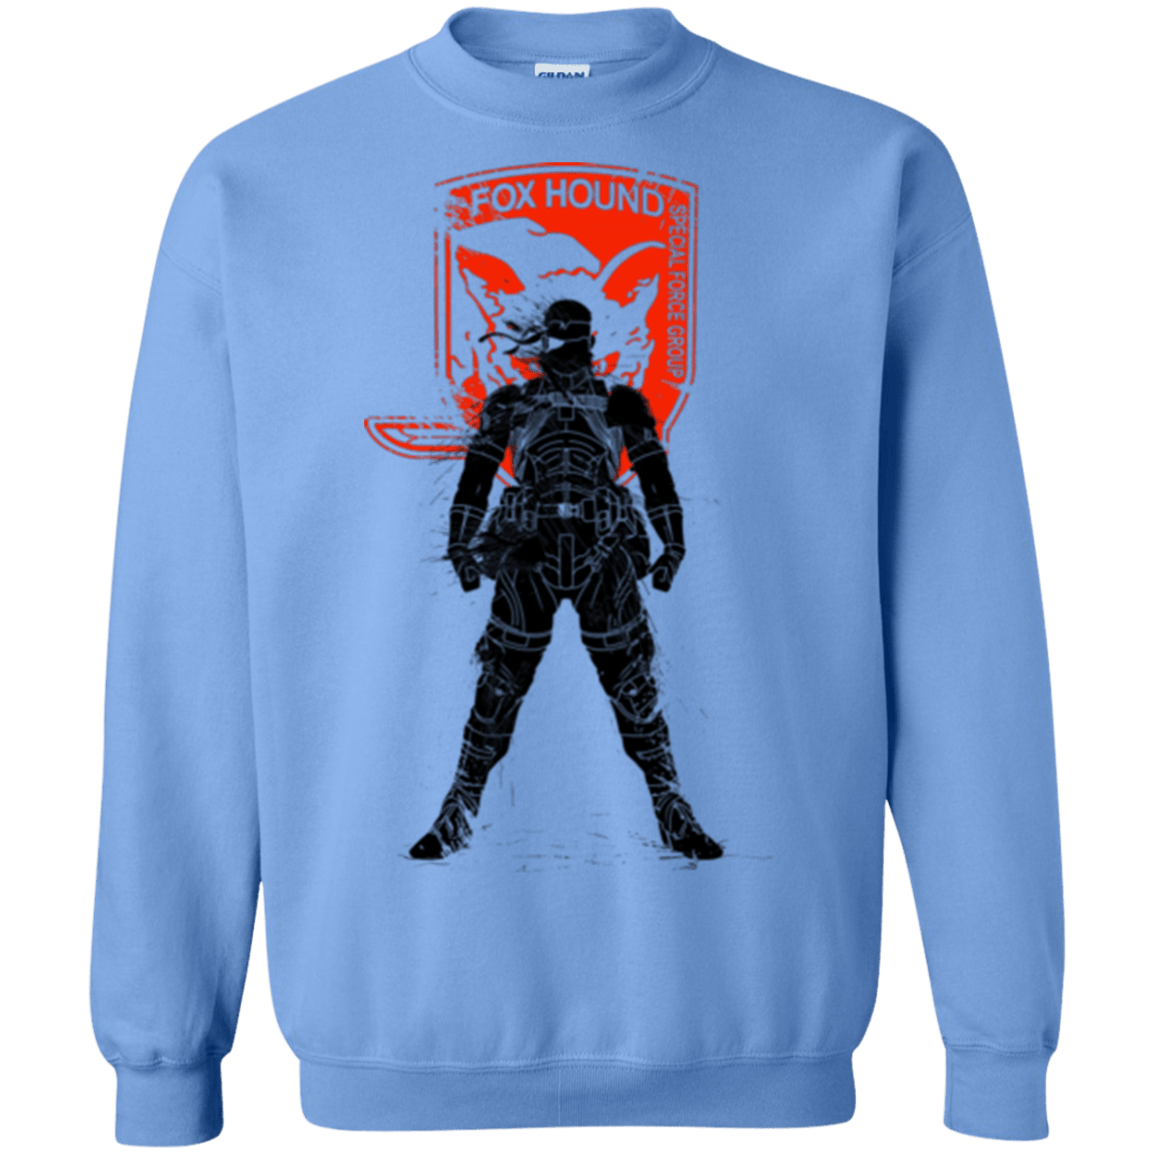 Sweatshirts Carolina Blue / Small Fox Hound (1) Crewneck Sweatshirt